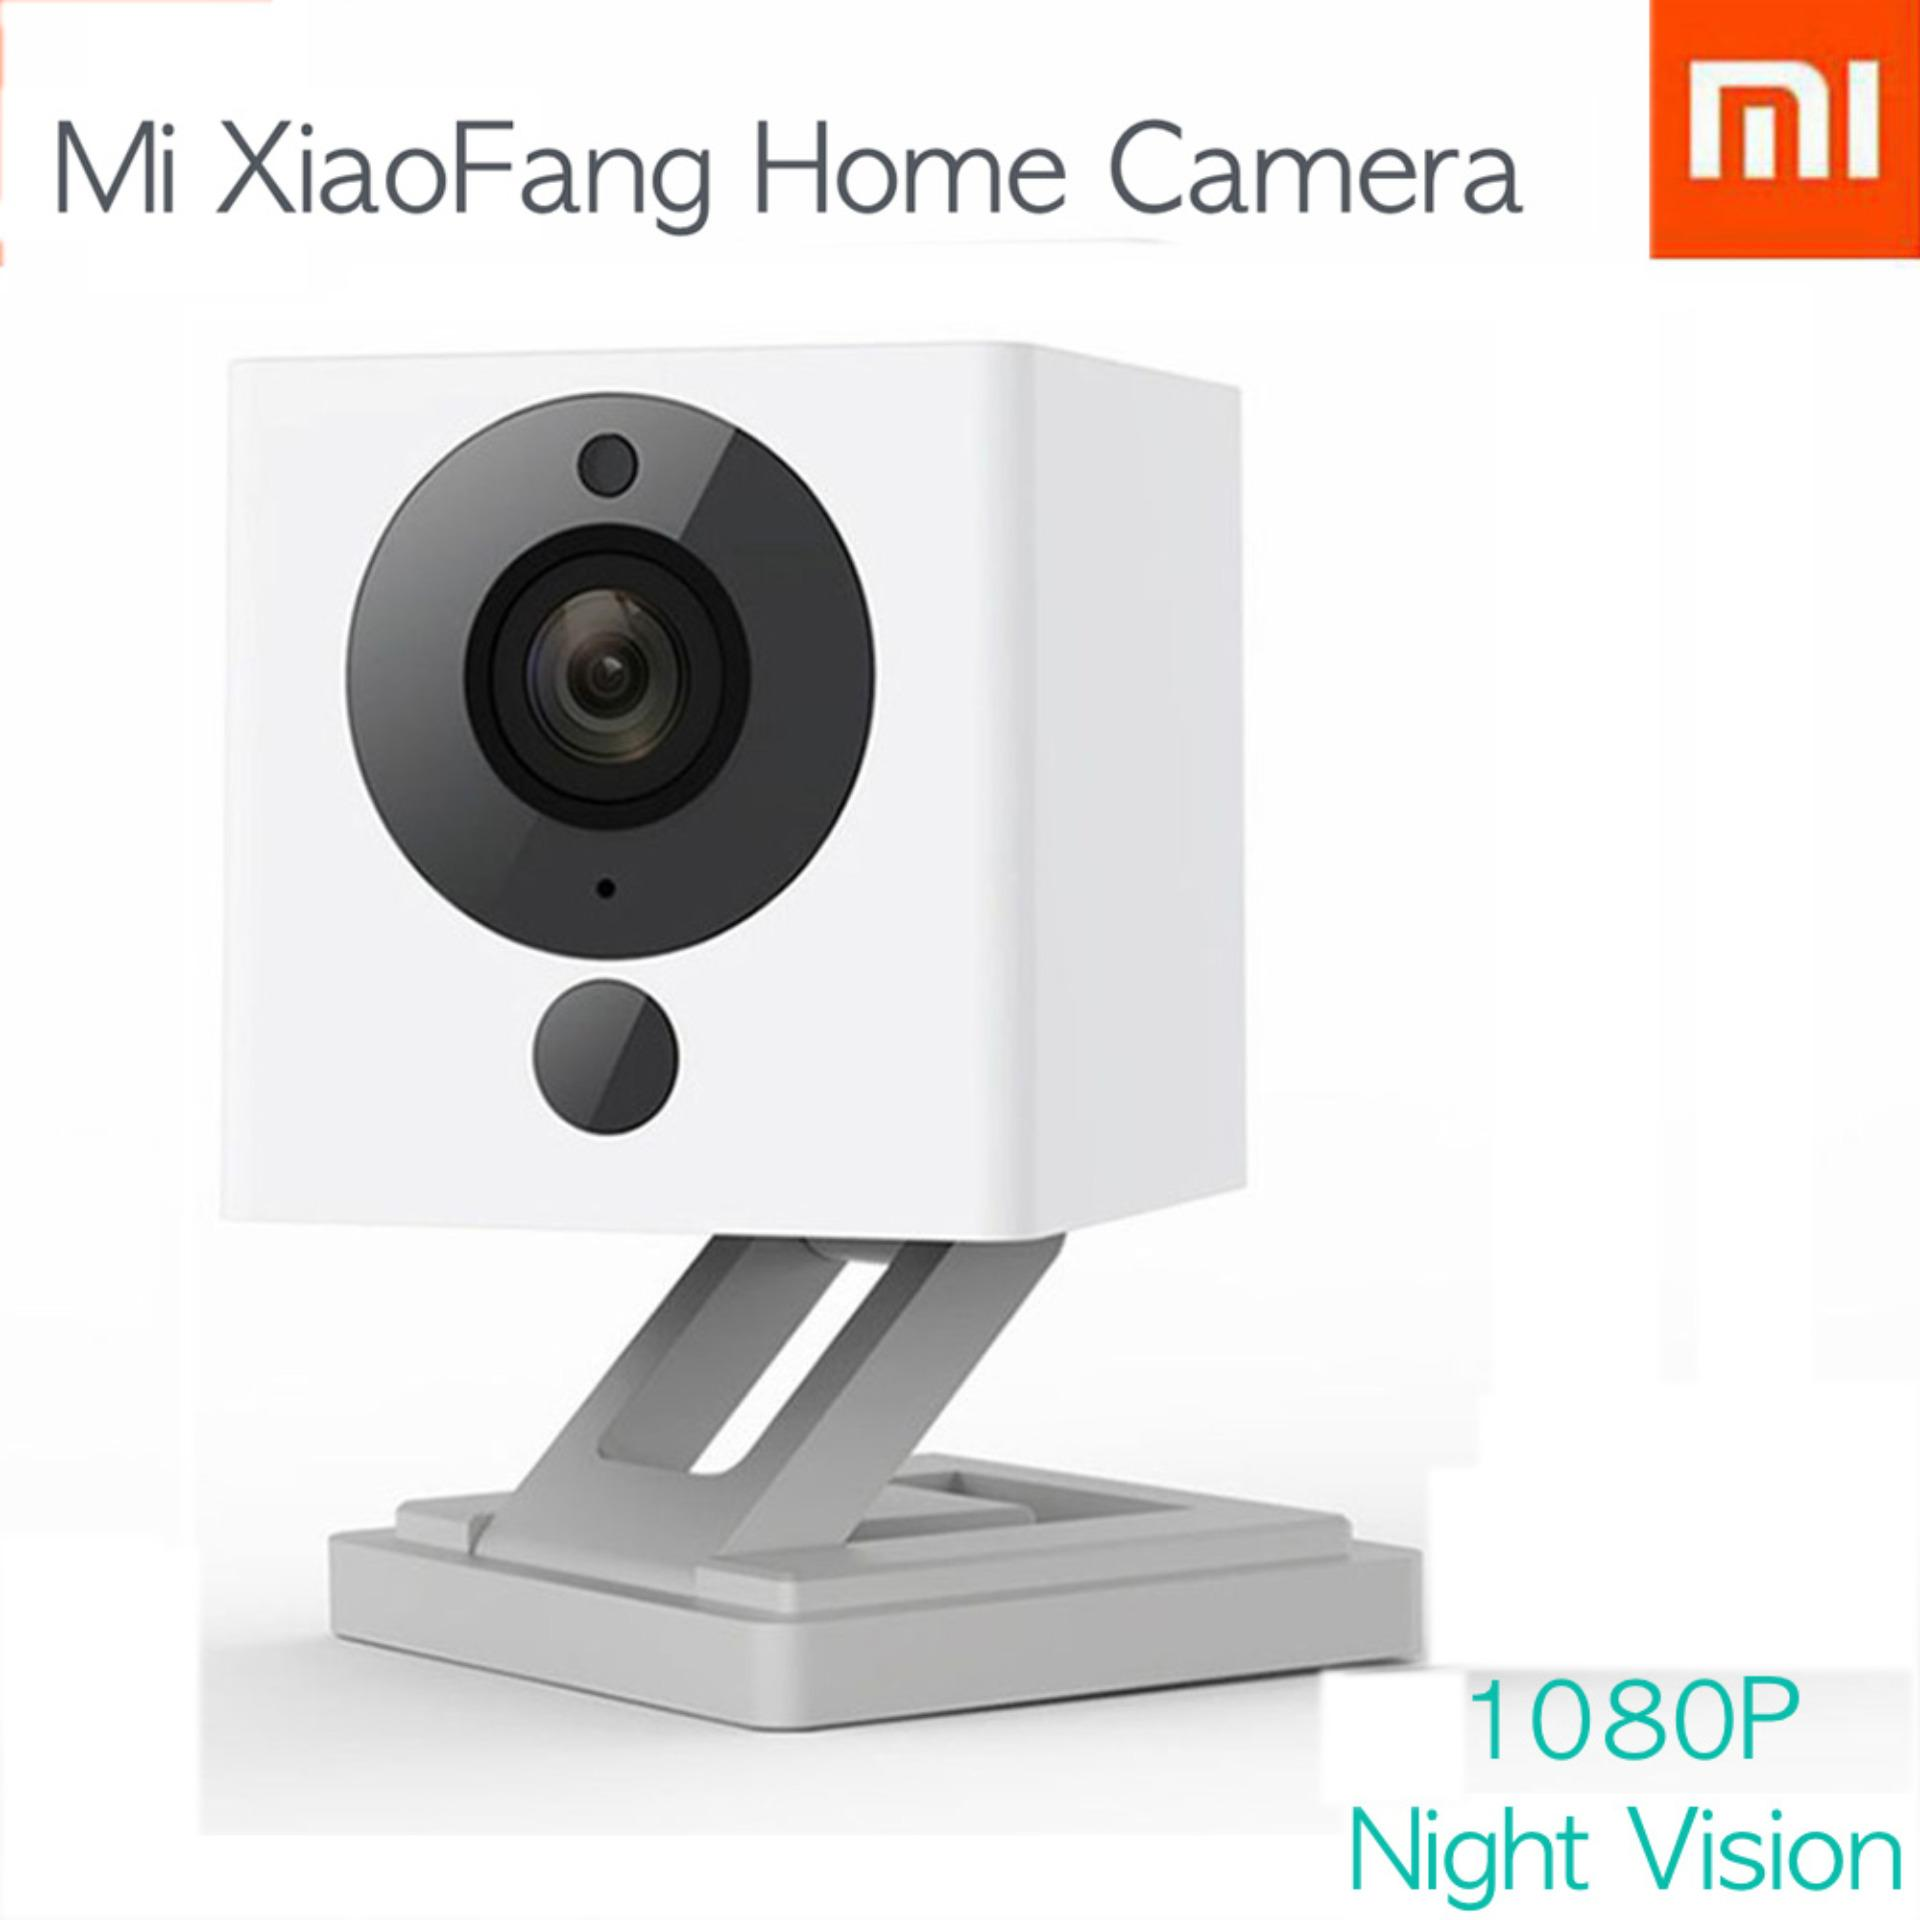 Berapa Harga Xiaomi Xiaofang Small Squarebox Smart 1080P Ip Cctv Wifi Camera Putih Xiaomi Di Indonesia